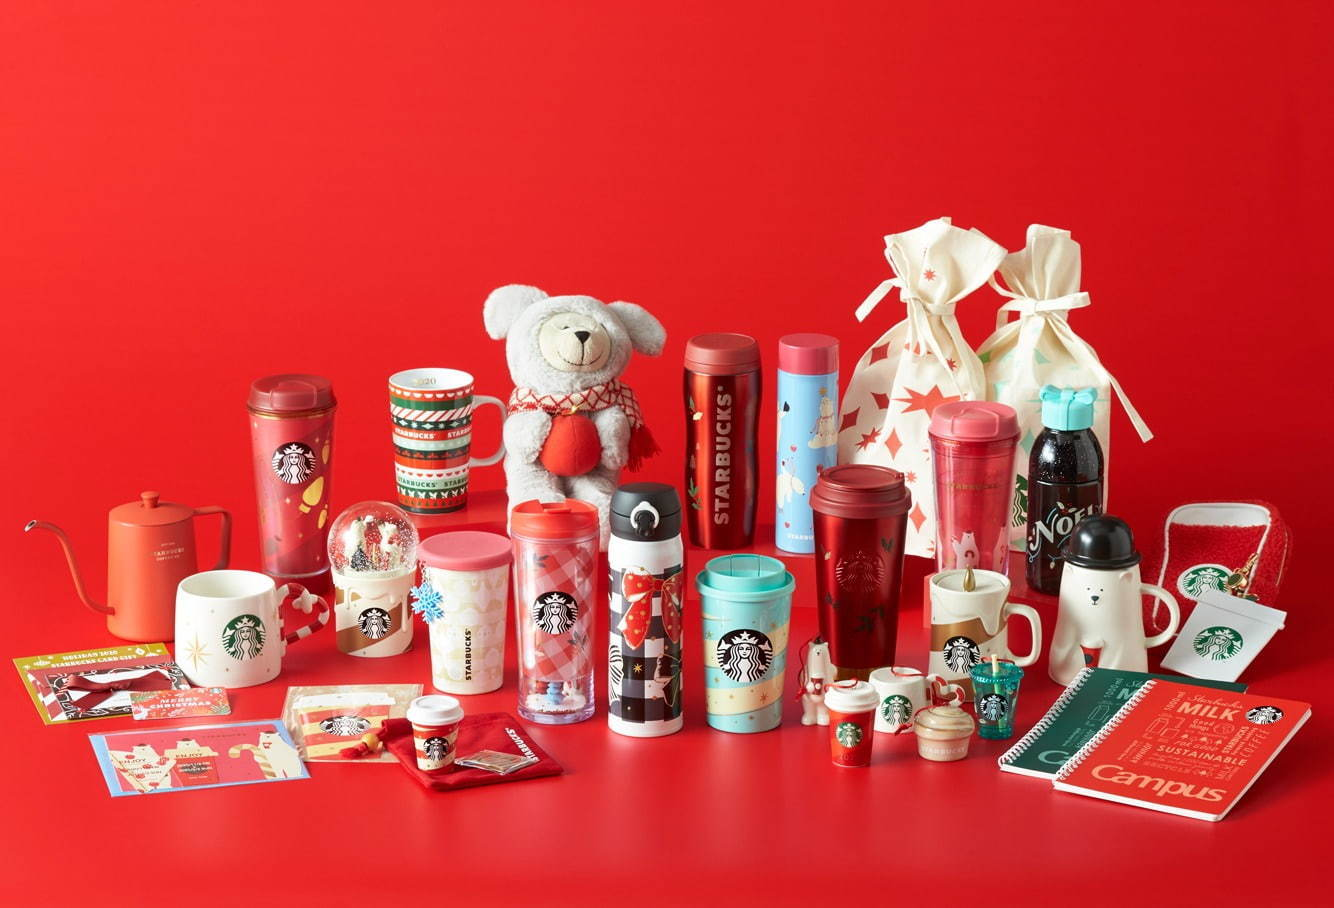 starbucks japan pastel christmas 2020 - first collection full items